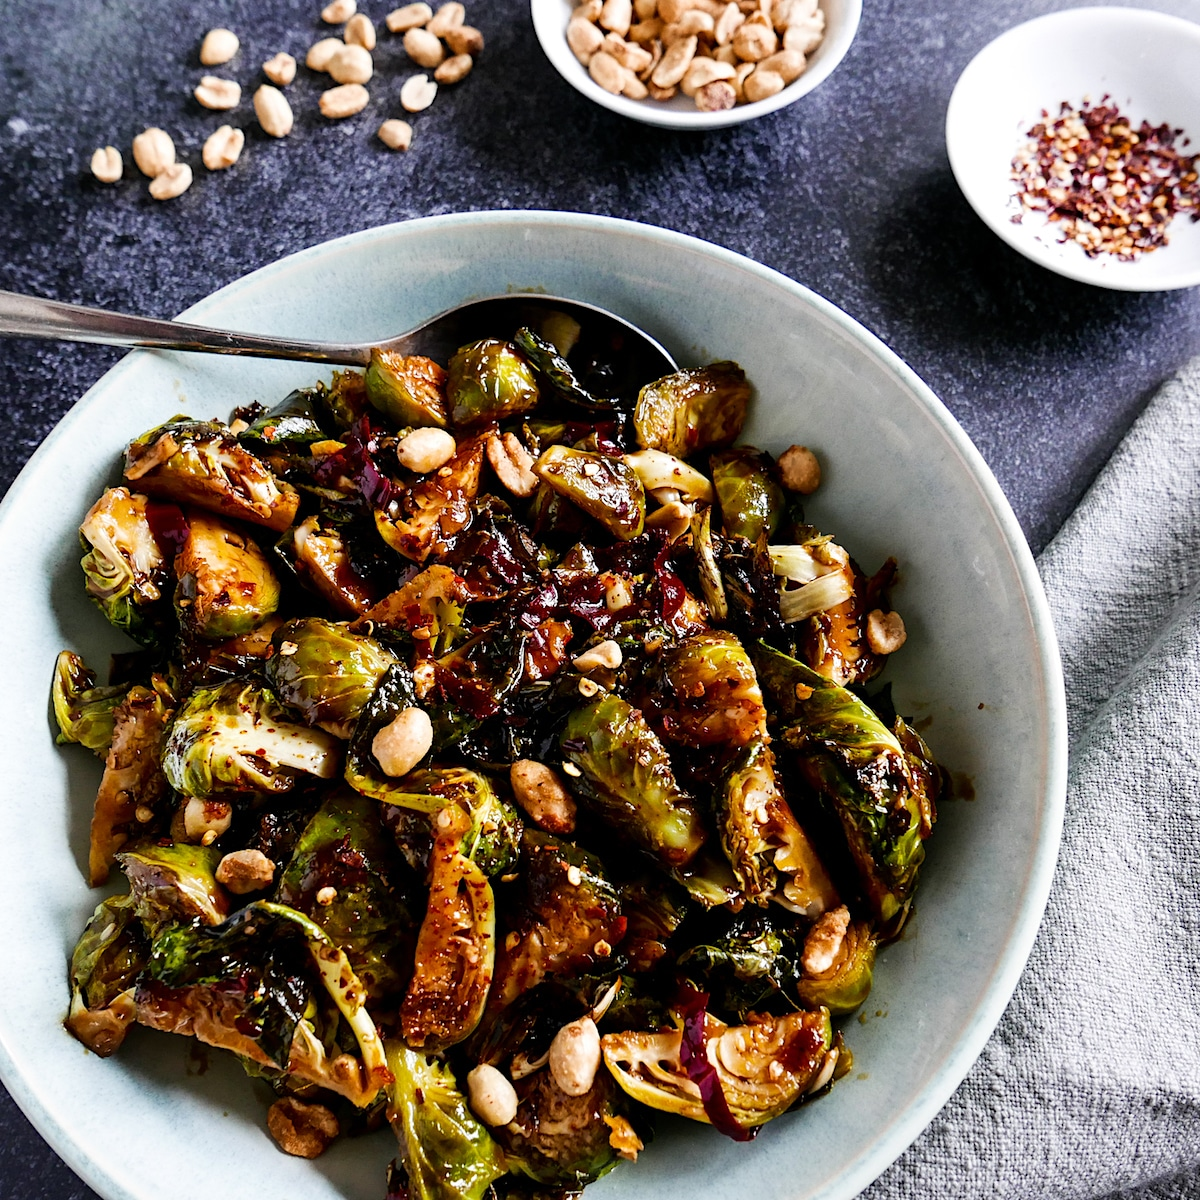 kung pao brussels sprouts in a white bowl with spoon and a cup of peanuts next to bowl